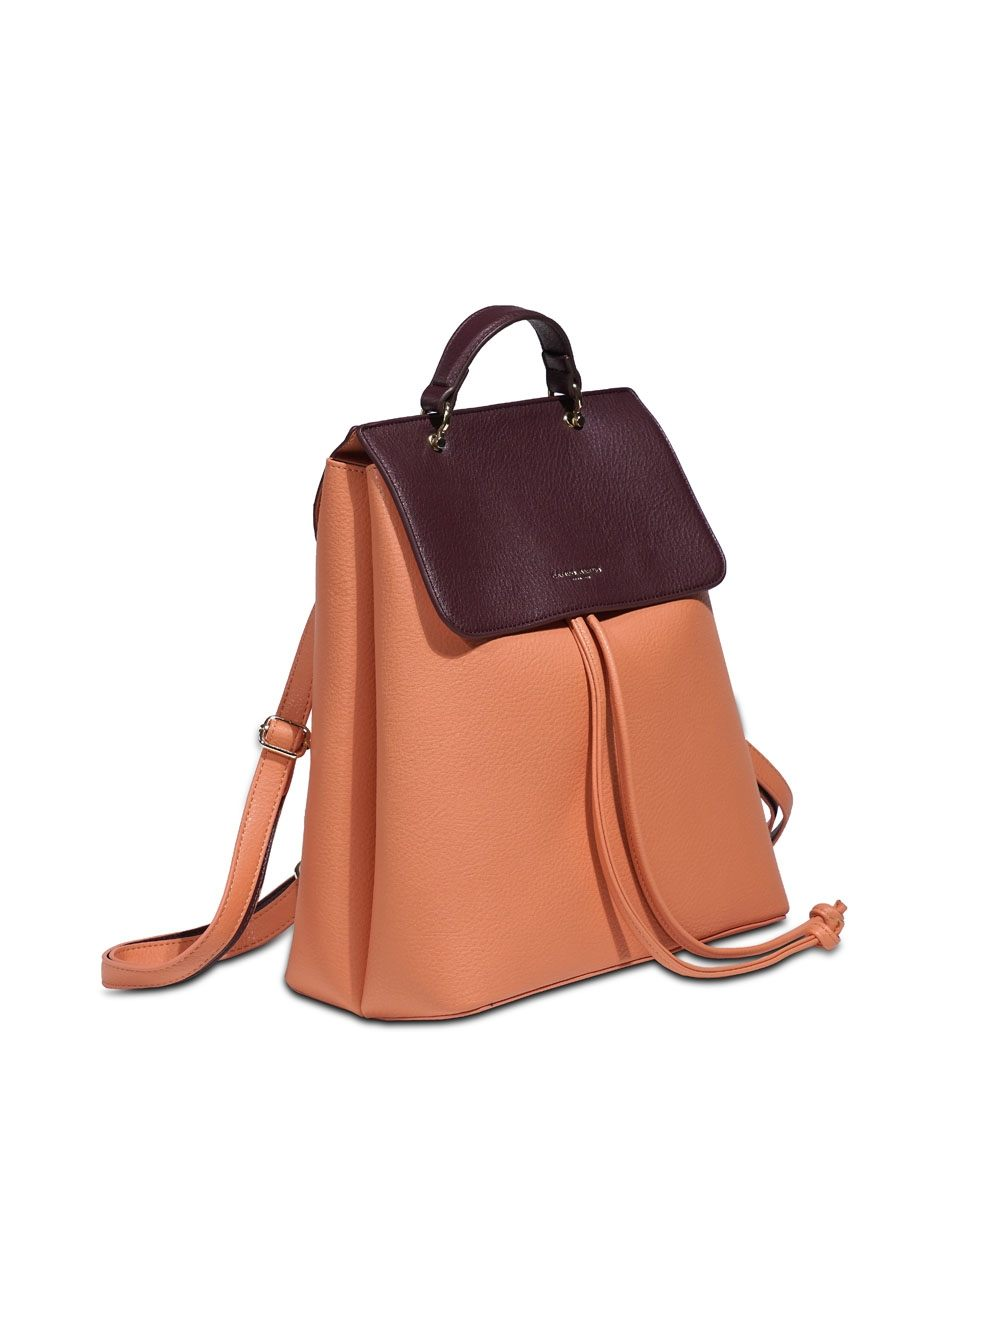 Fannie Backpack Handbag